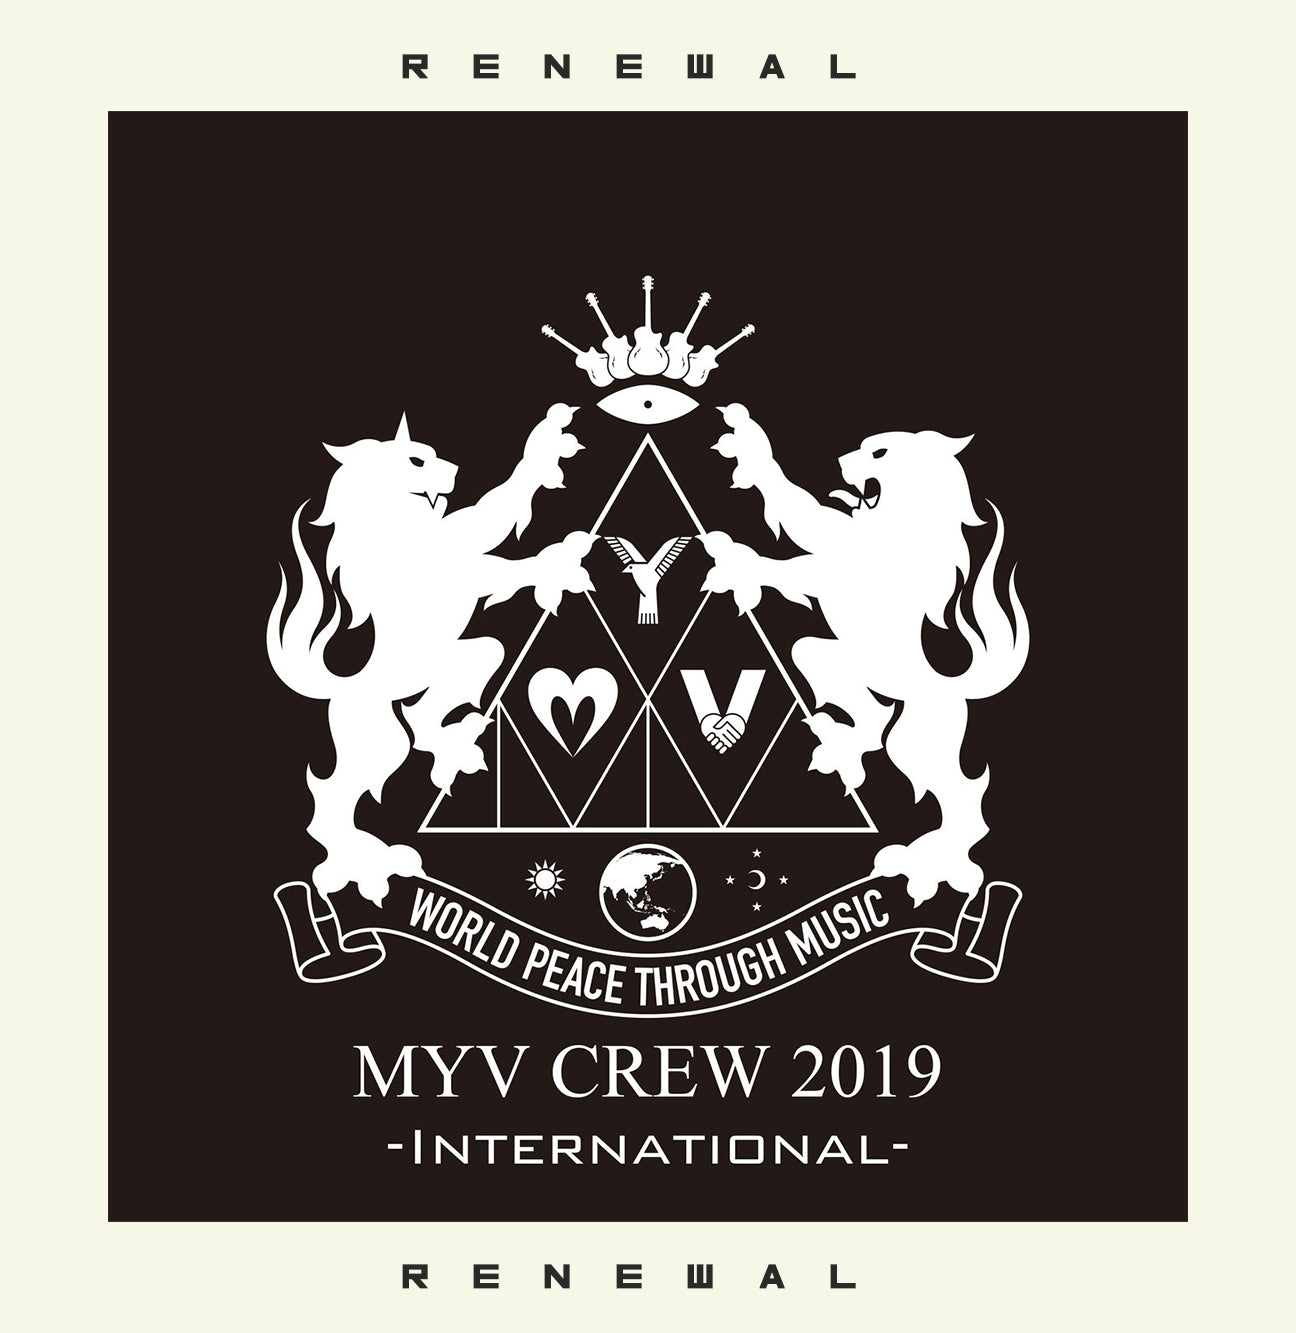 International Miyavi Fan Club Myv Crew 2019 Renewal Membership